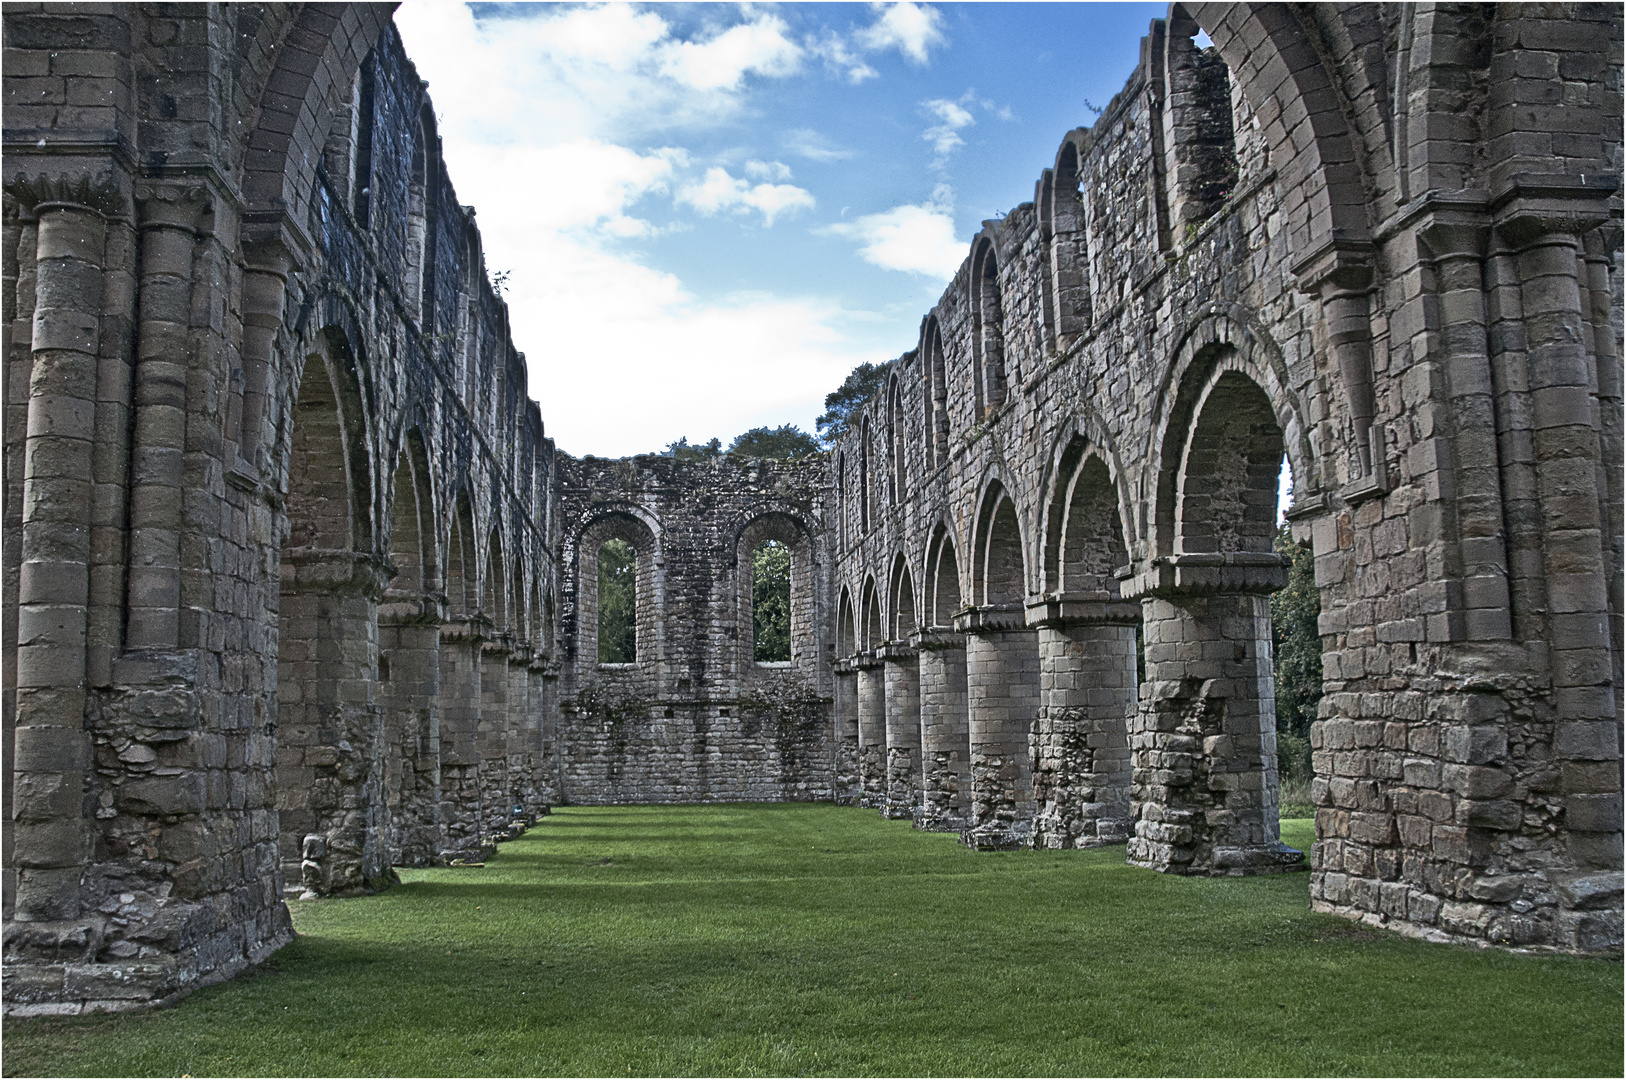 Buildwas Abbey Ruins